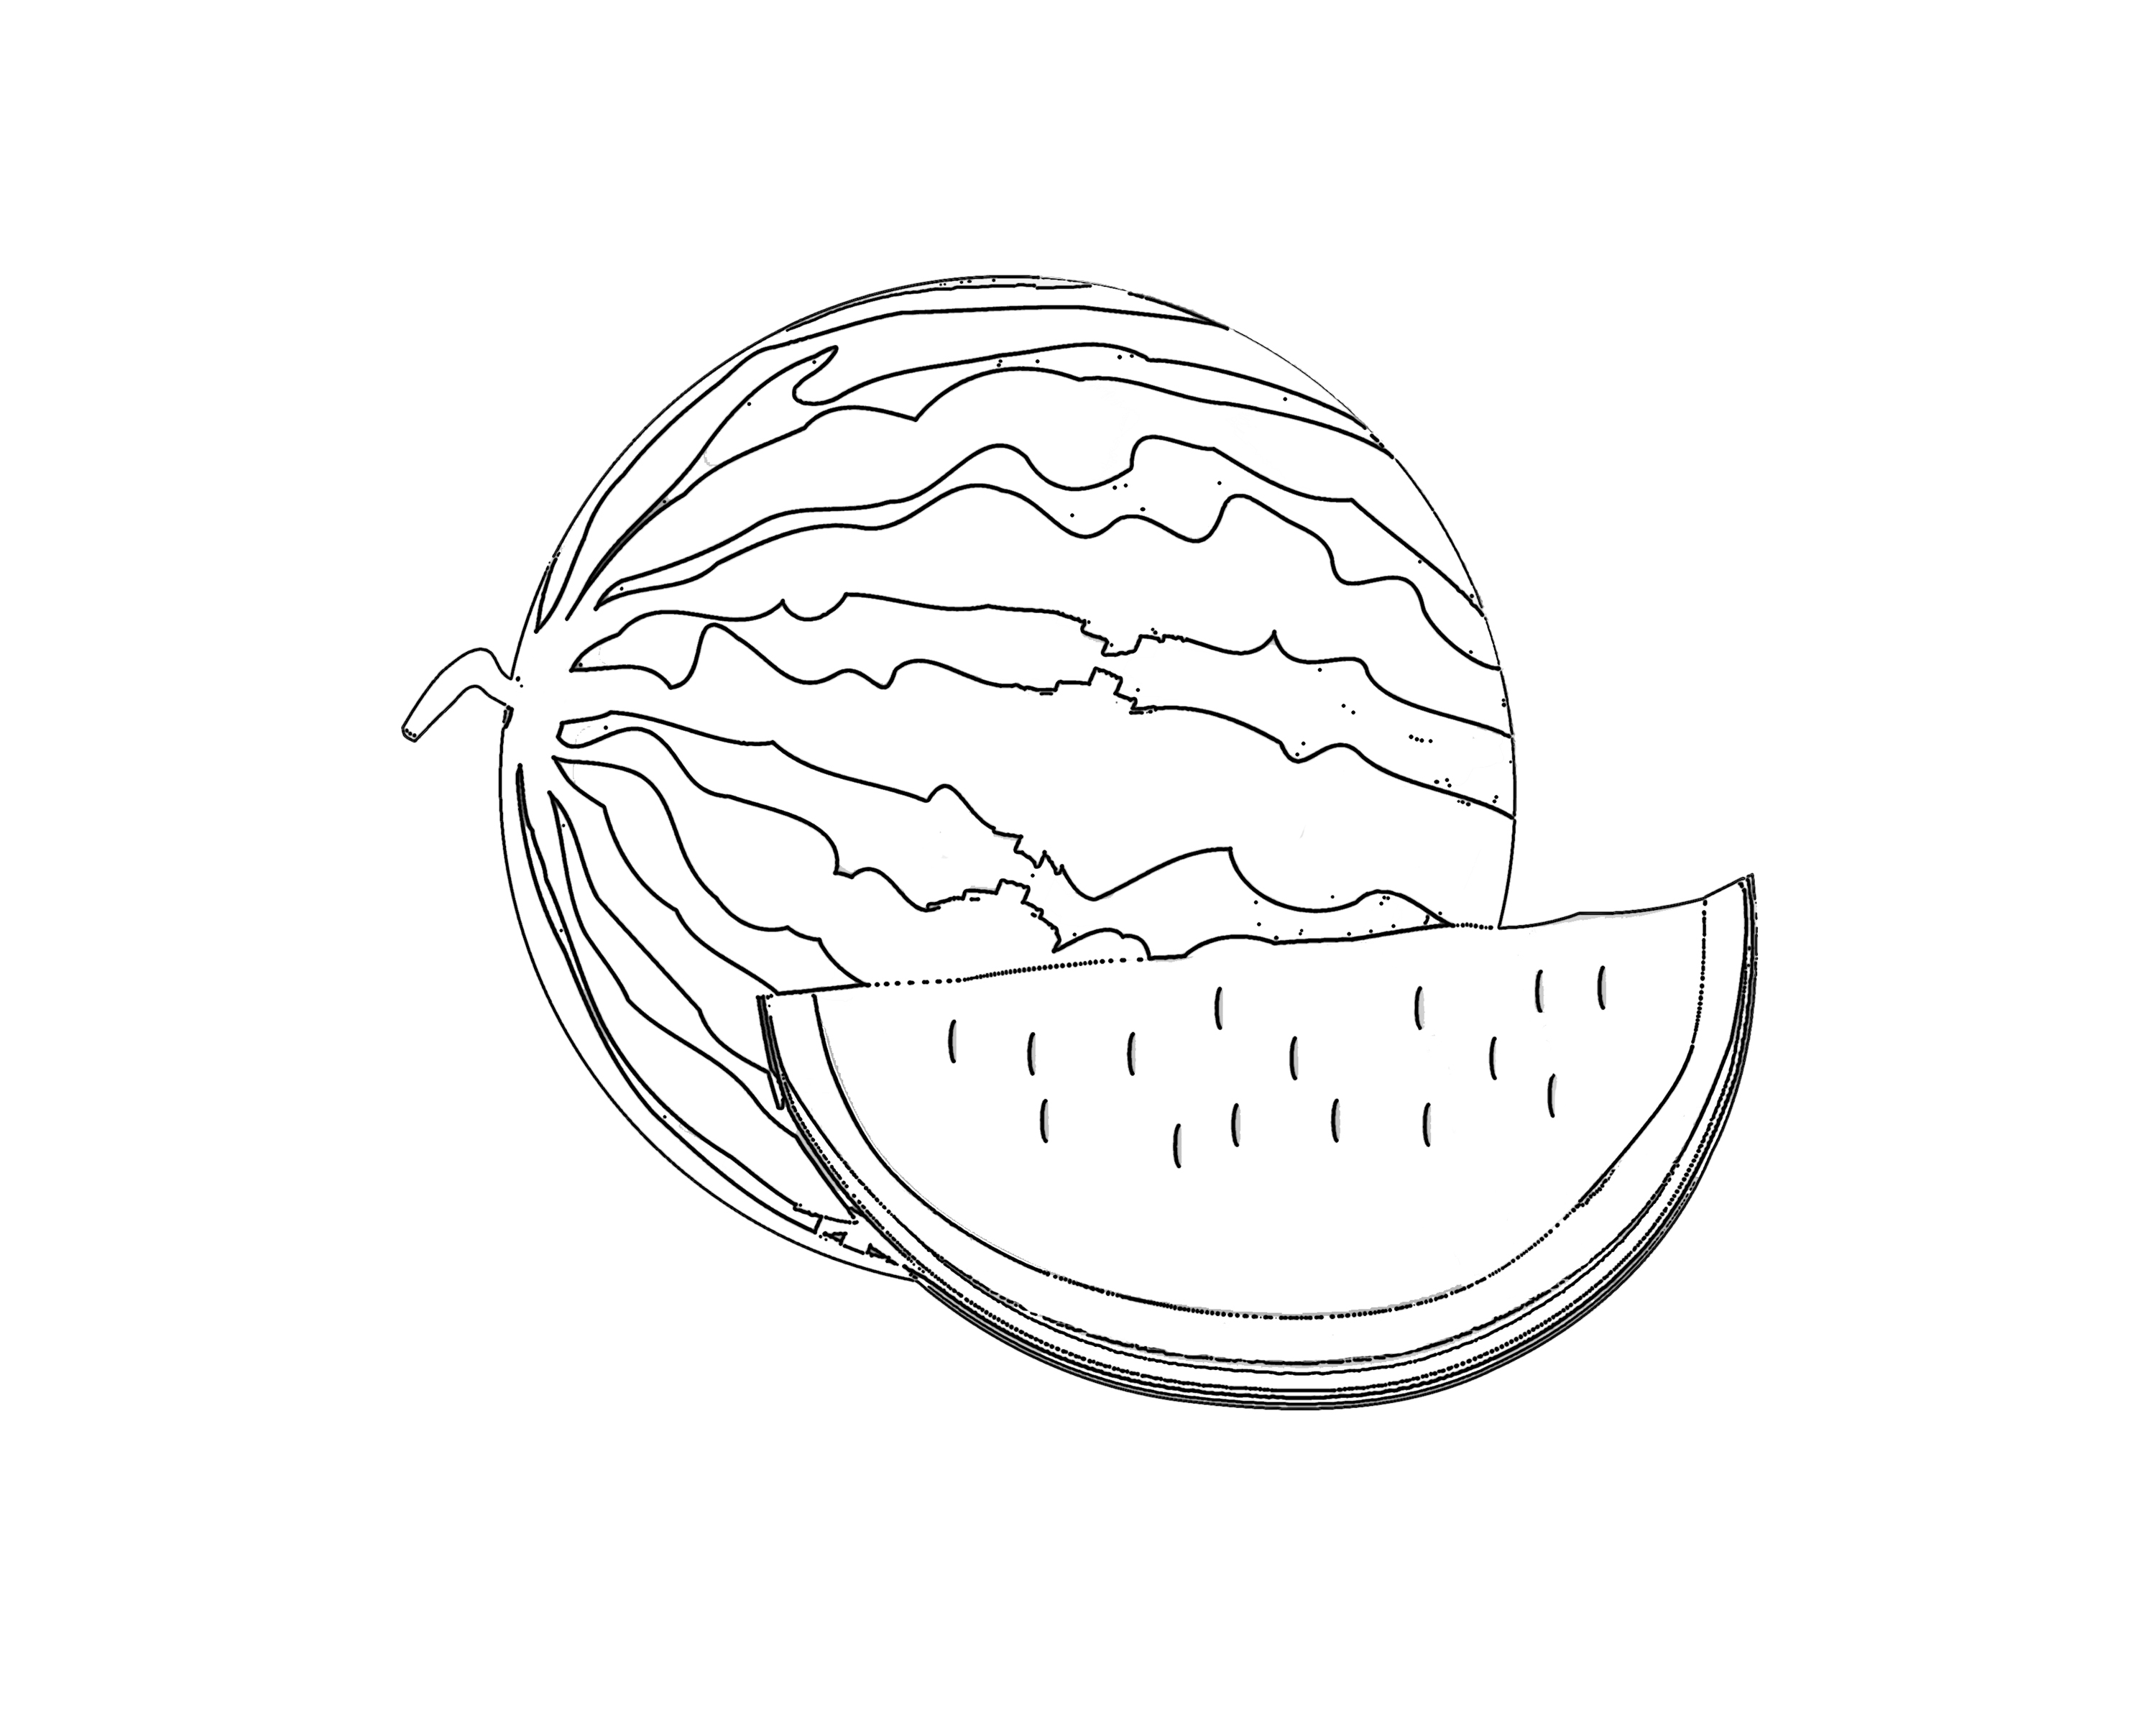 slice watermelon coloring page